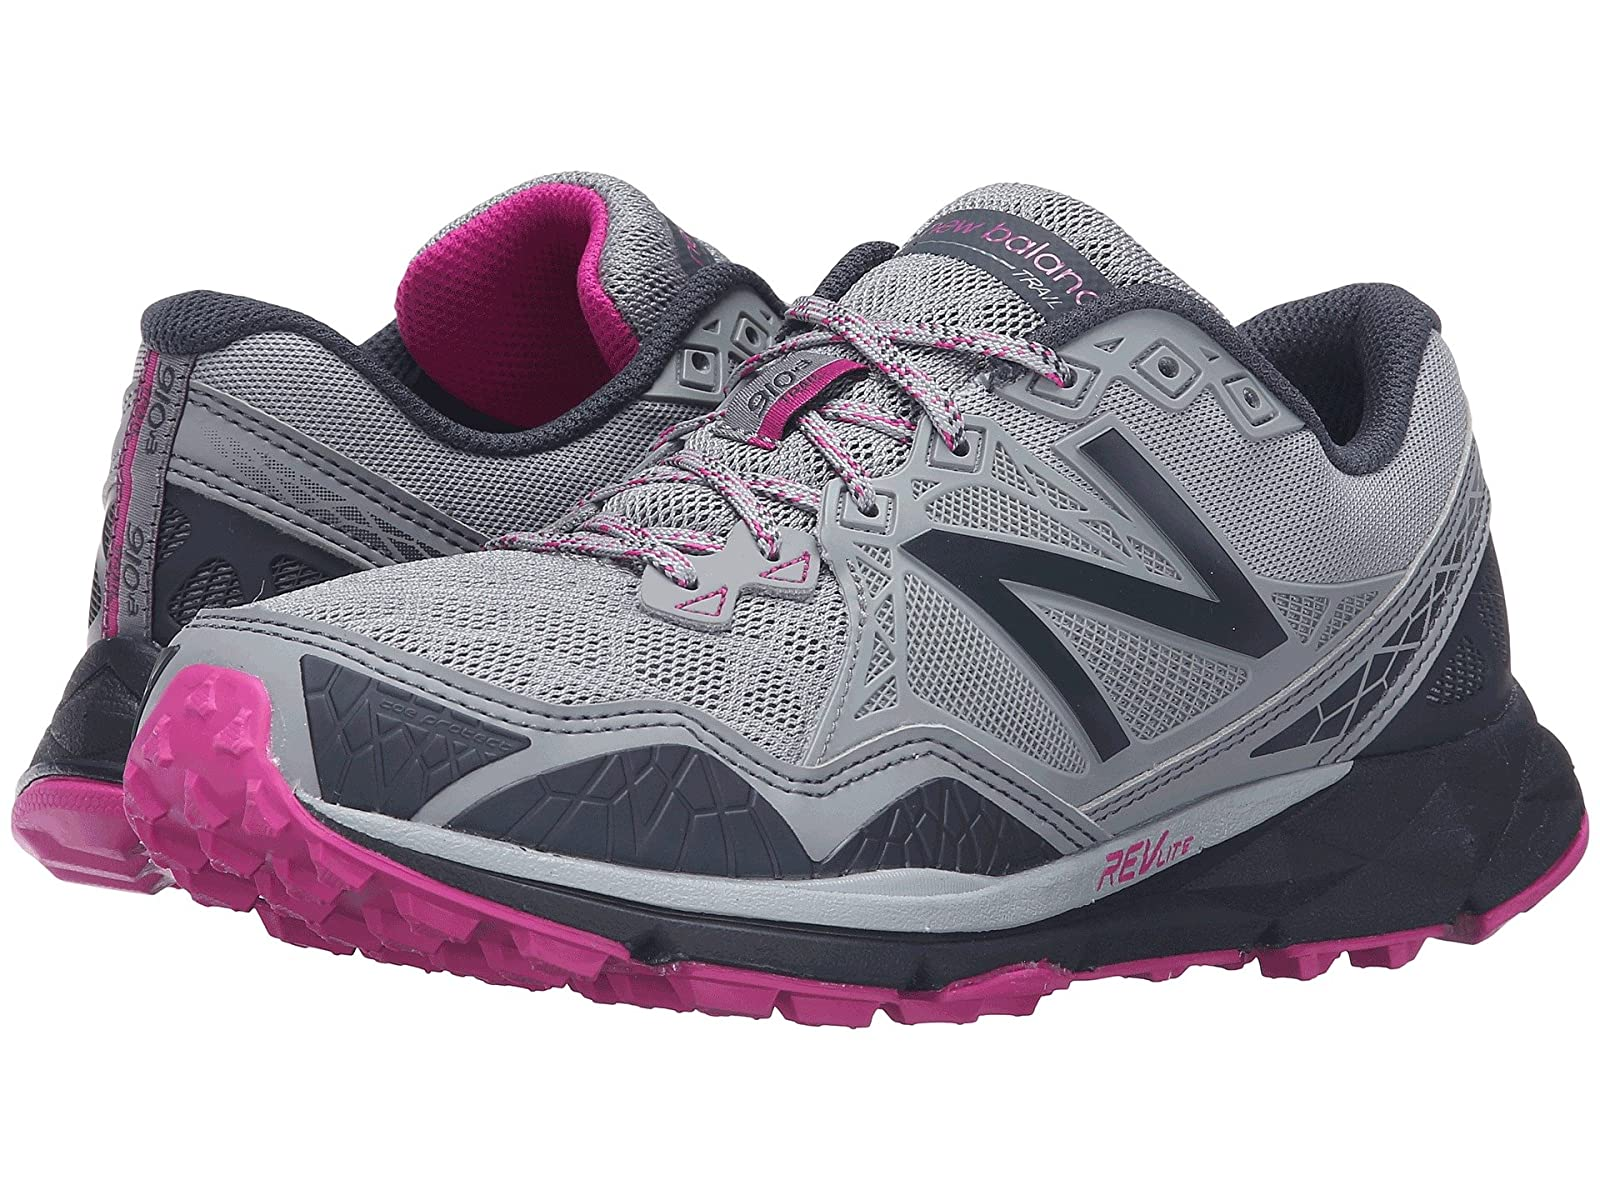 New Balance T910v3Cheap and distinctive eye-catching shoes